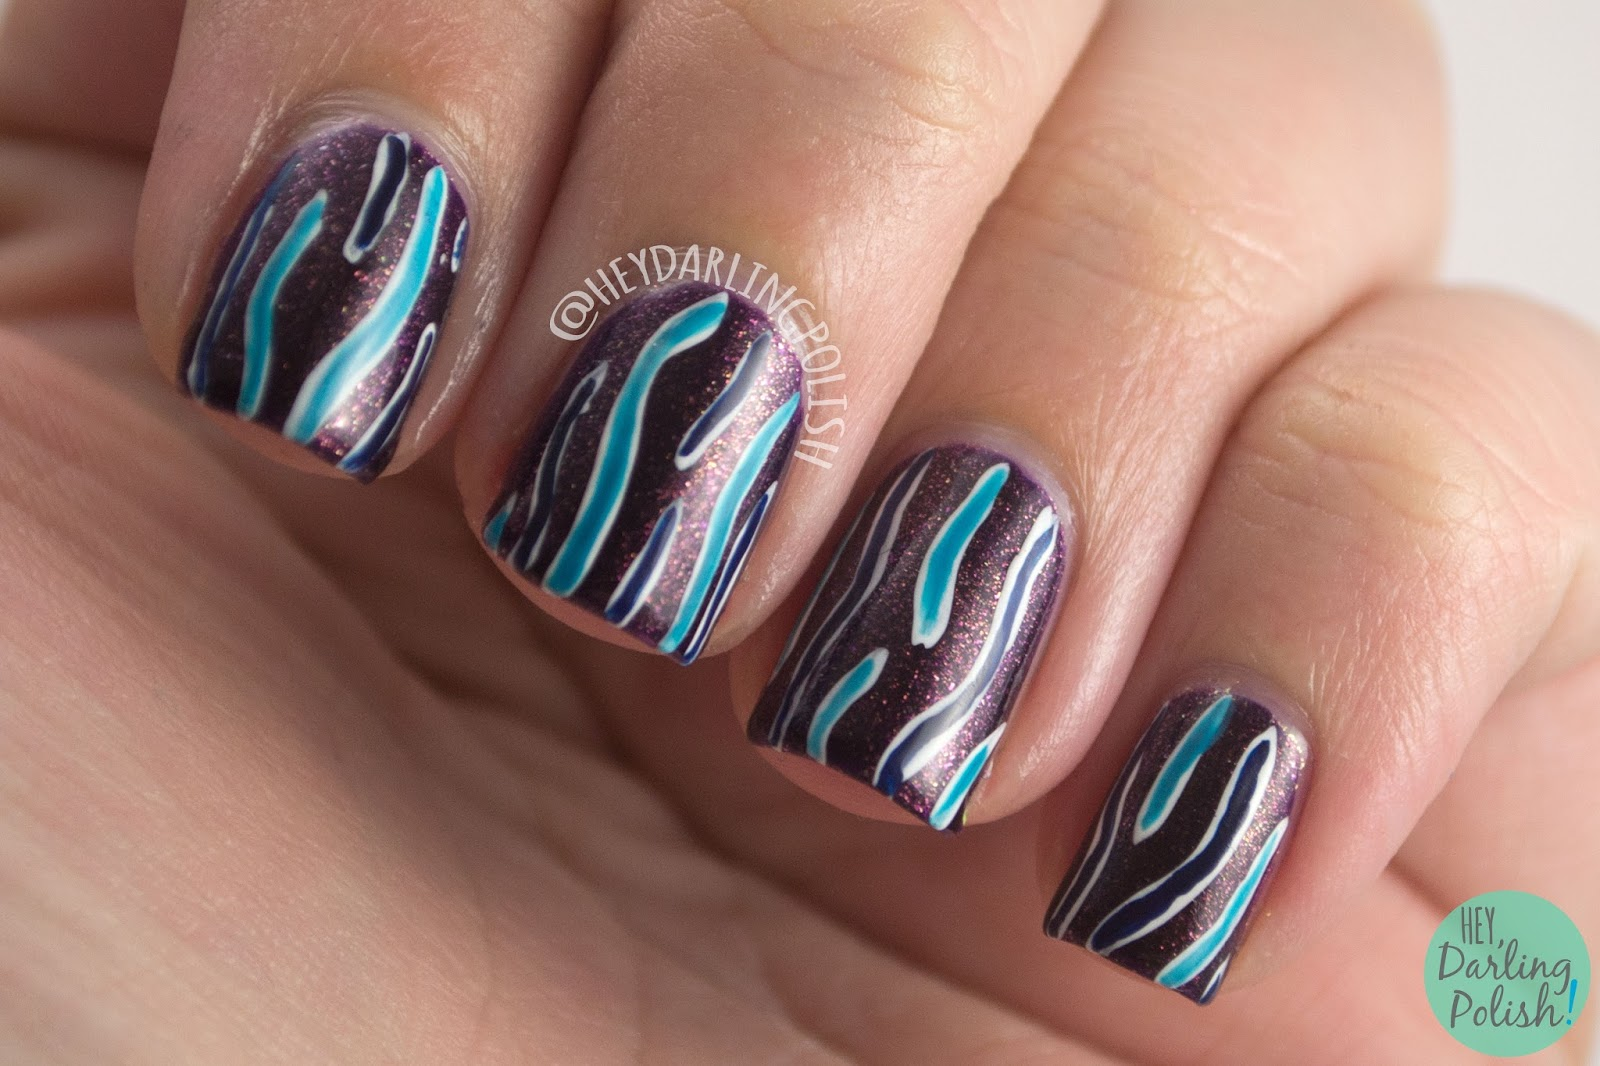 nails, nail art, nail polish, hey darling polish, stripes, purple, blue, wavy lines, the nail challenge collaborative